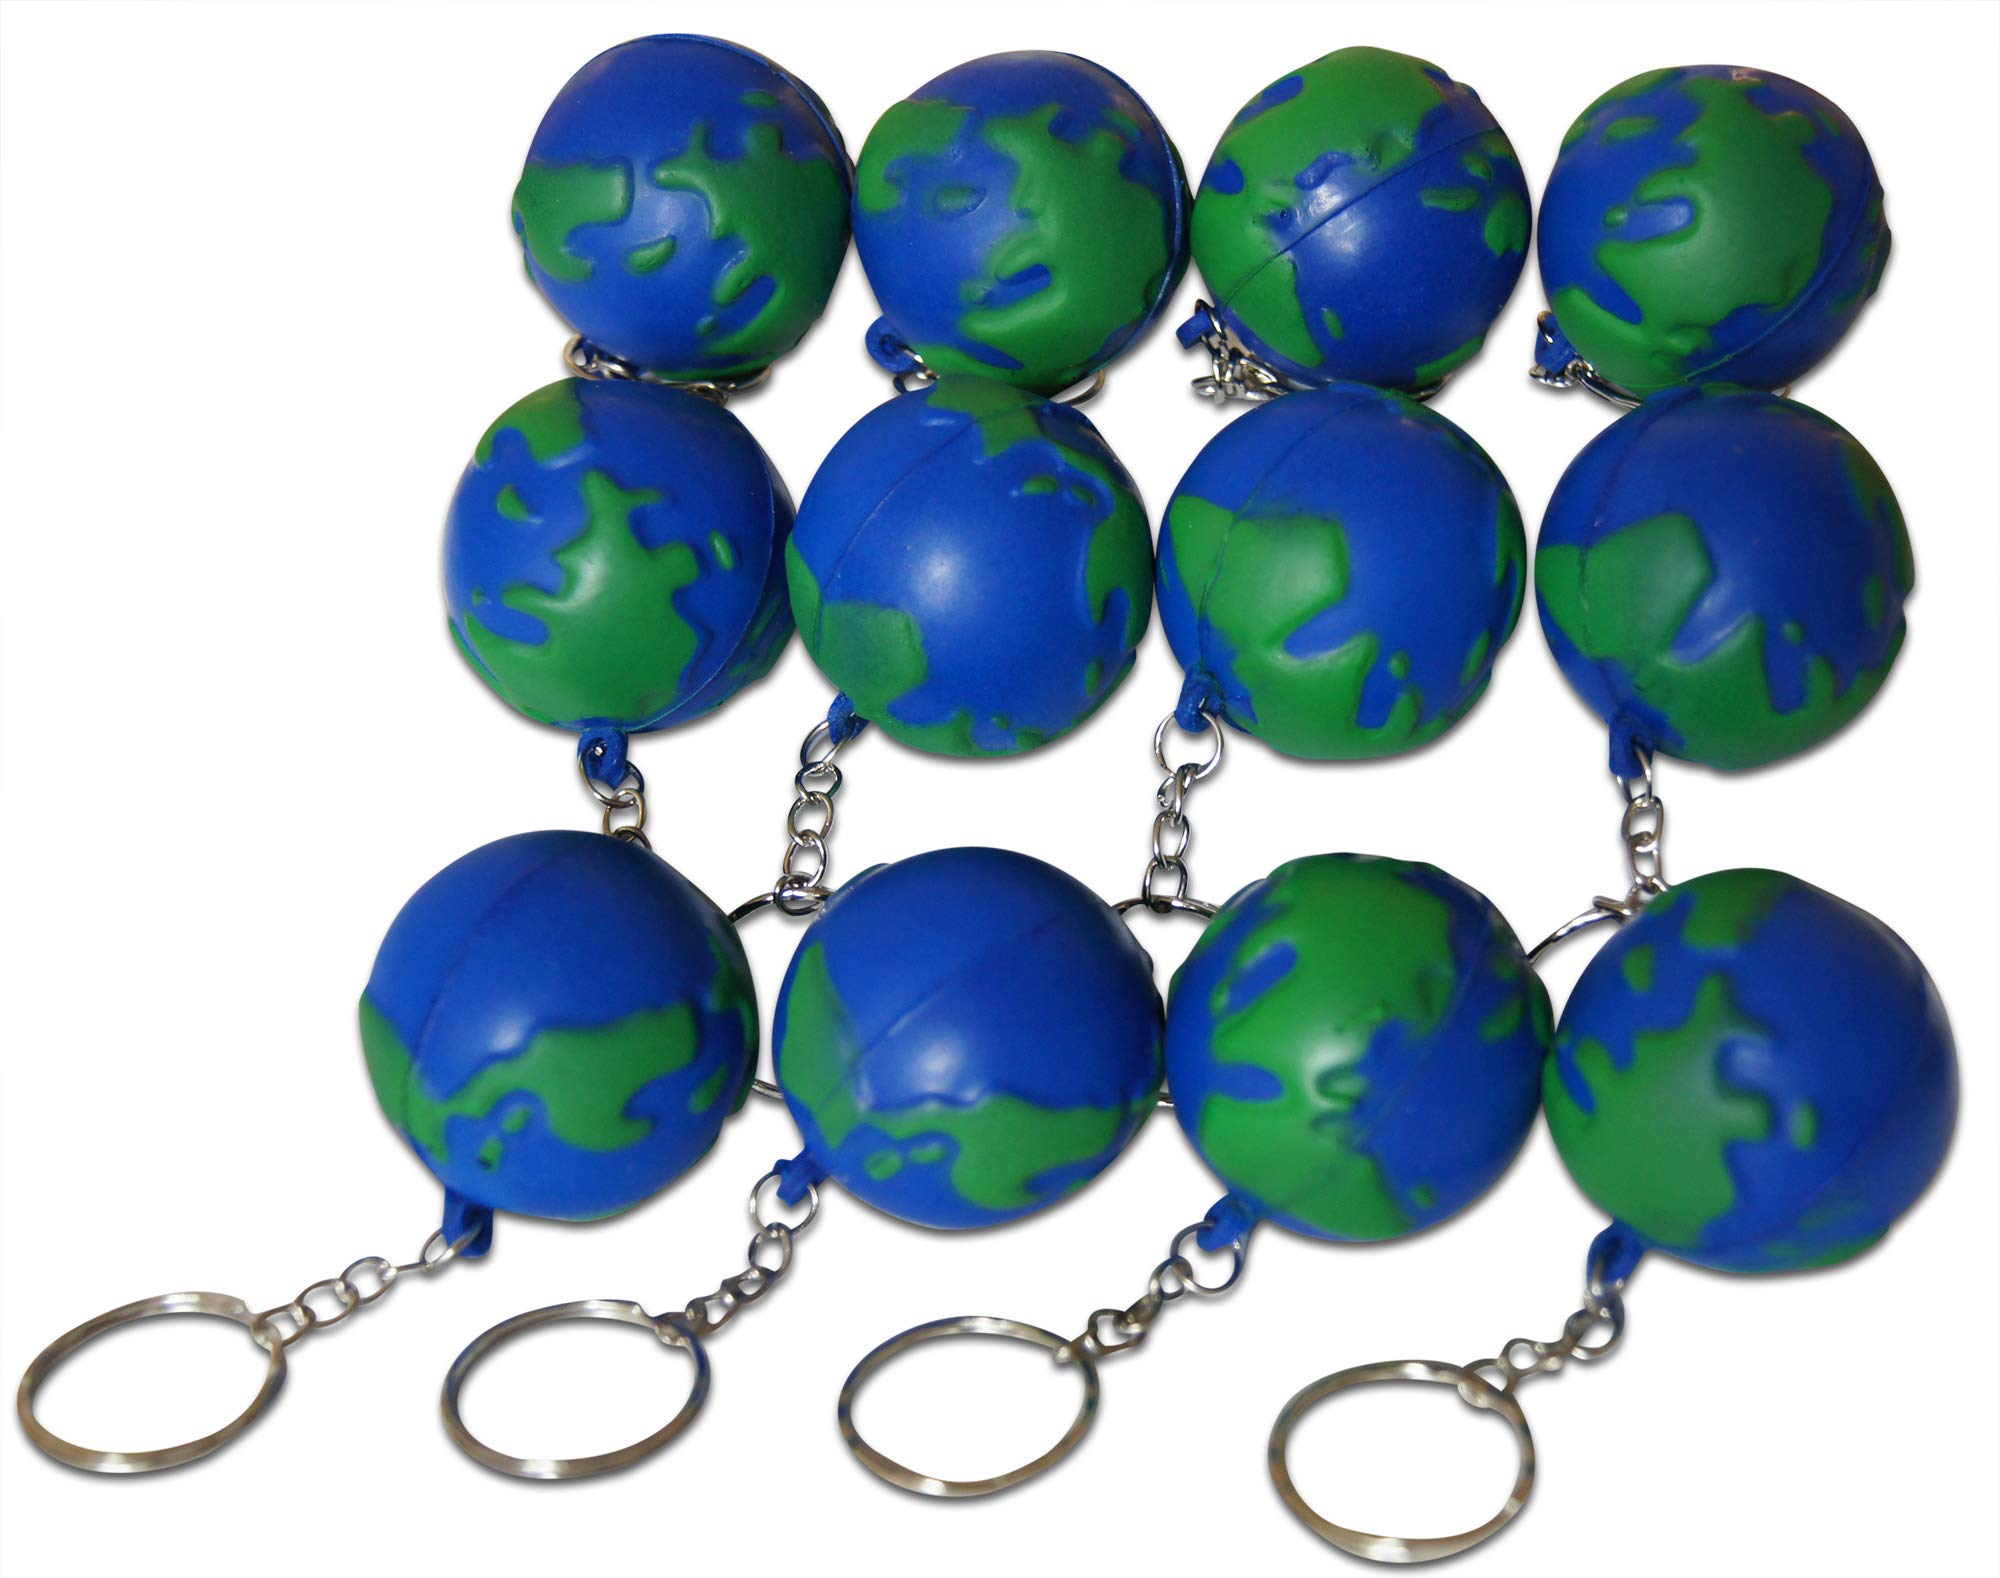 Novel Merk Earth Day World 12-Piece Keychains for Party Favors & School Carnival Prizes